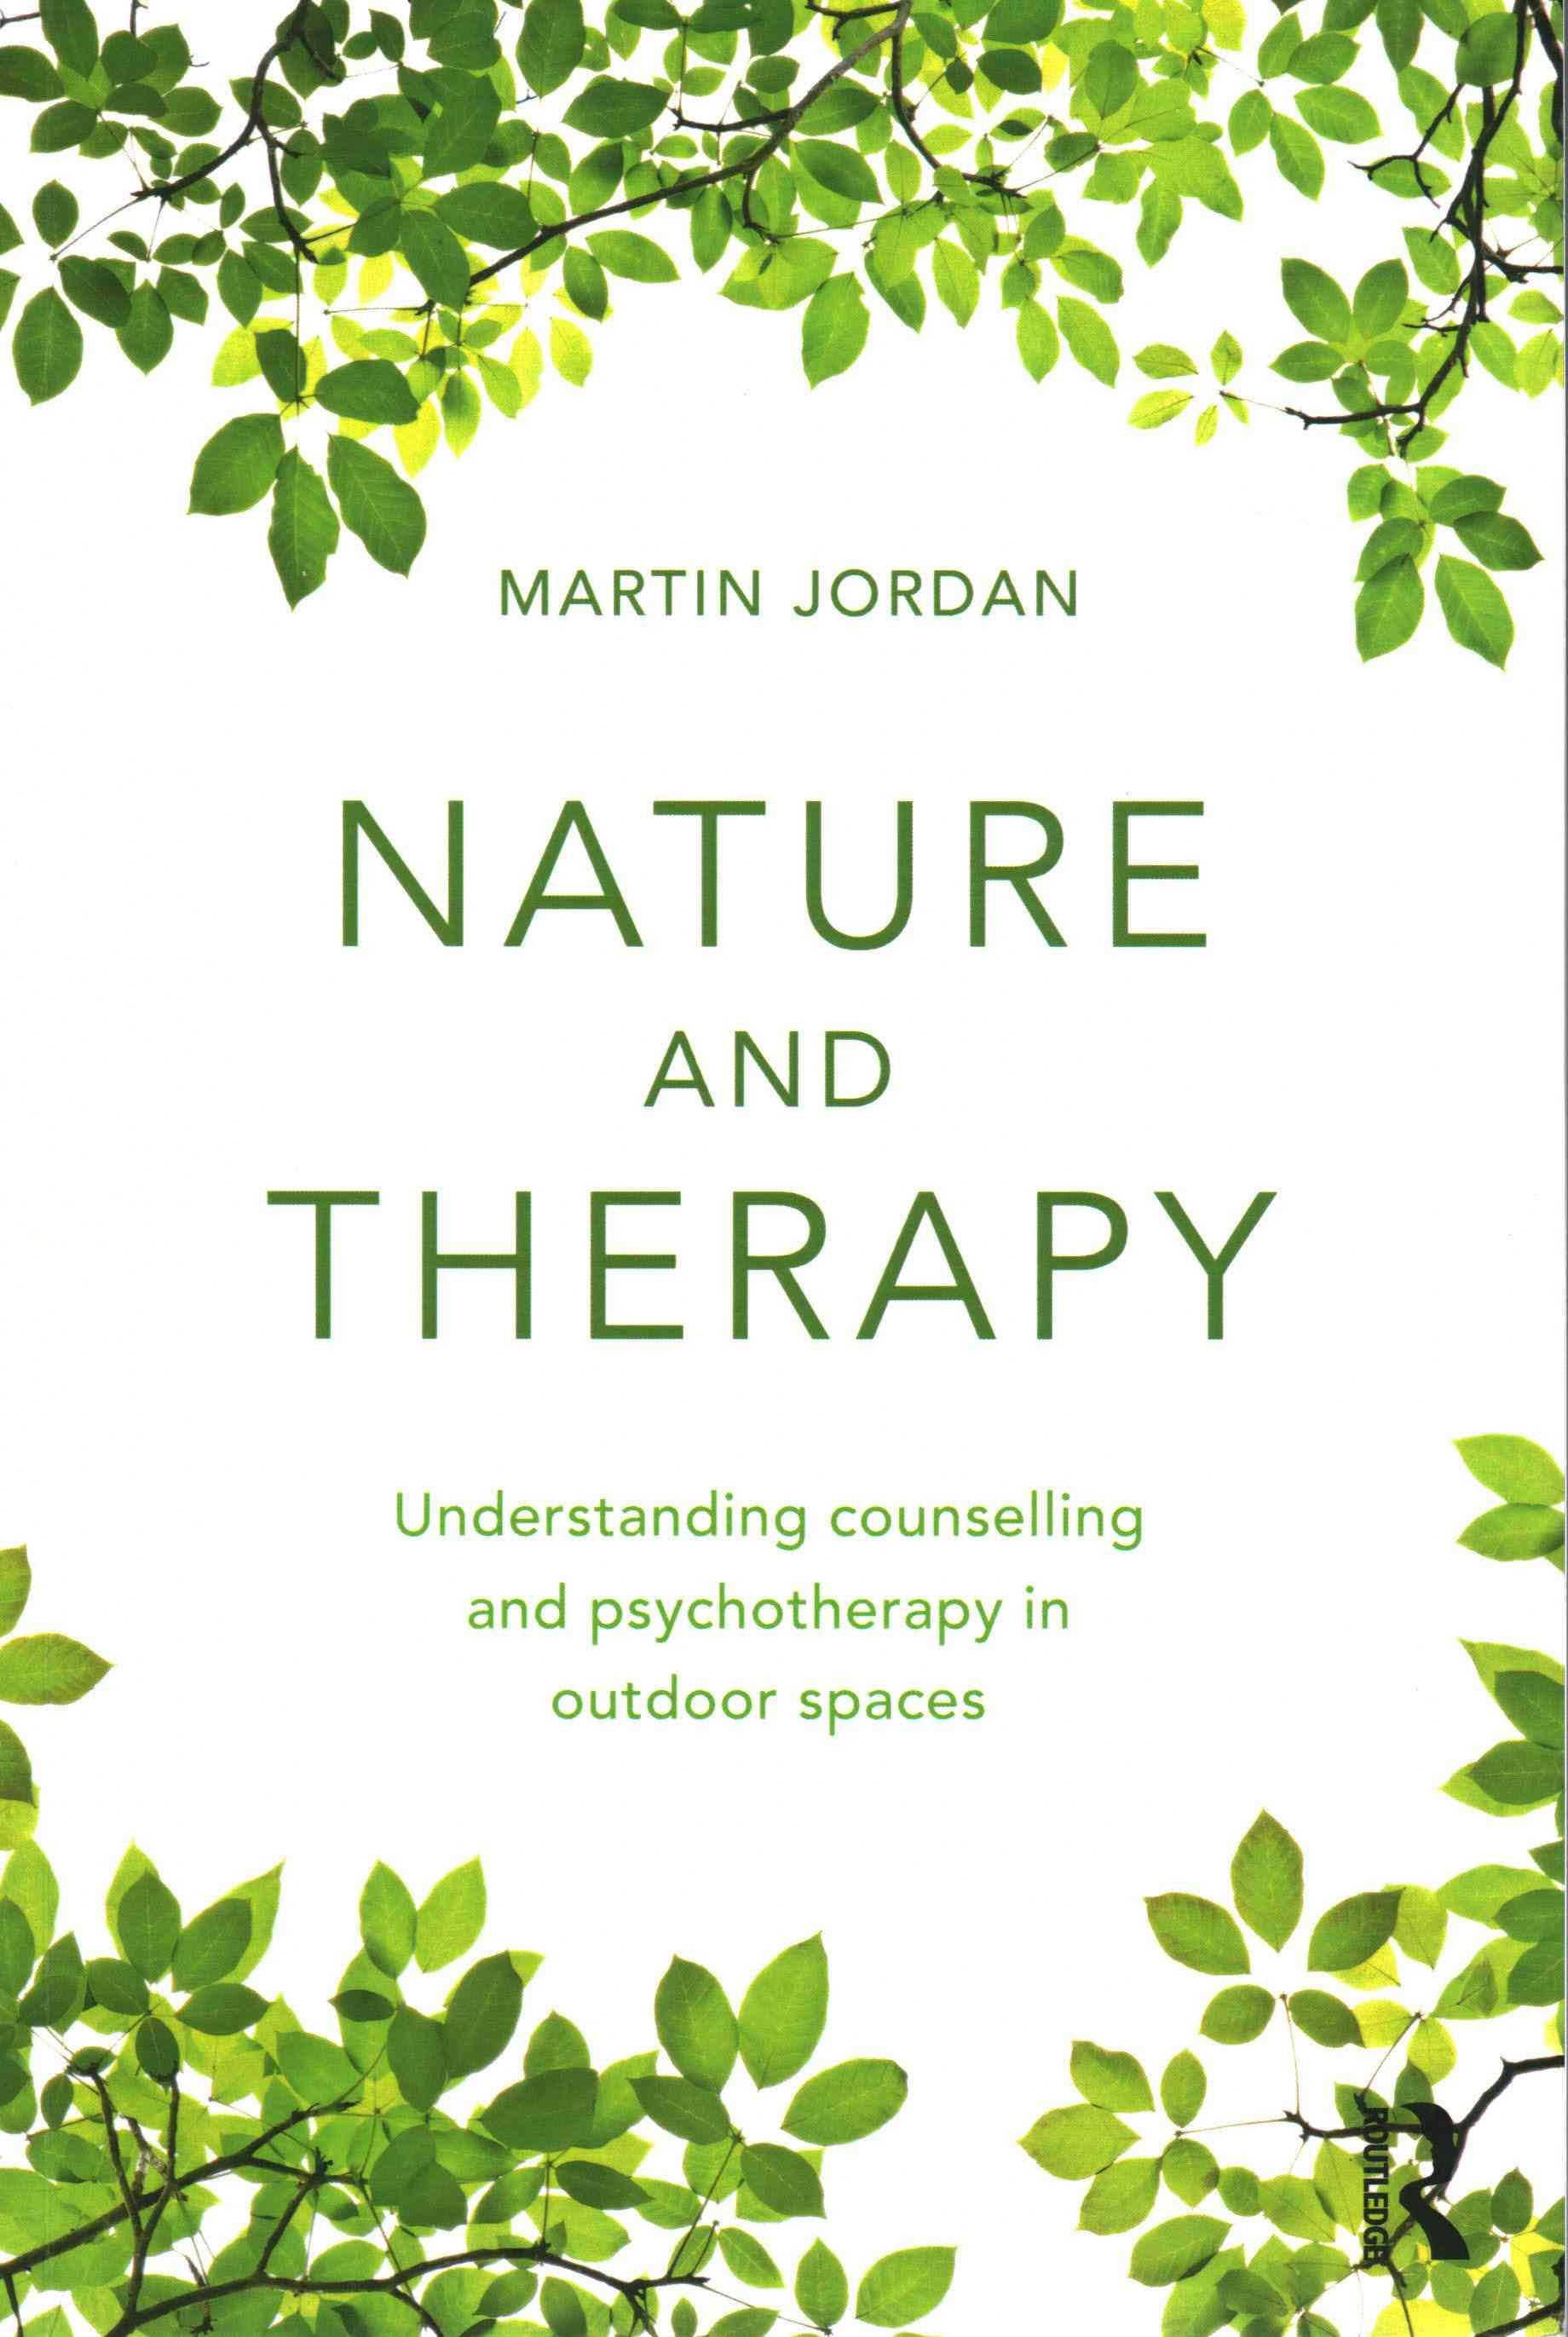 Nature and therapy understanding counselling and psychotherapy in